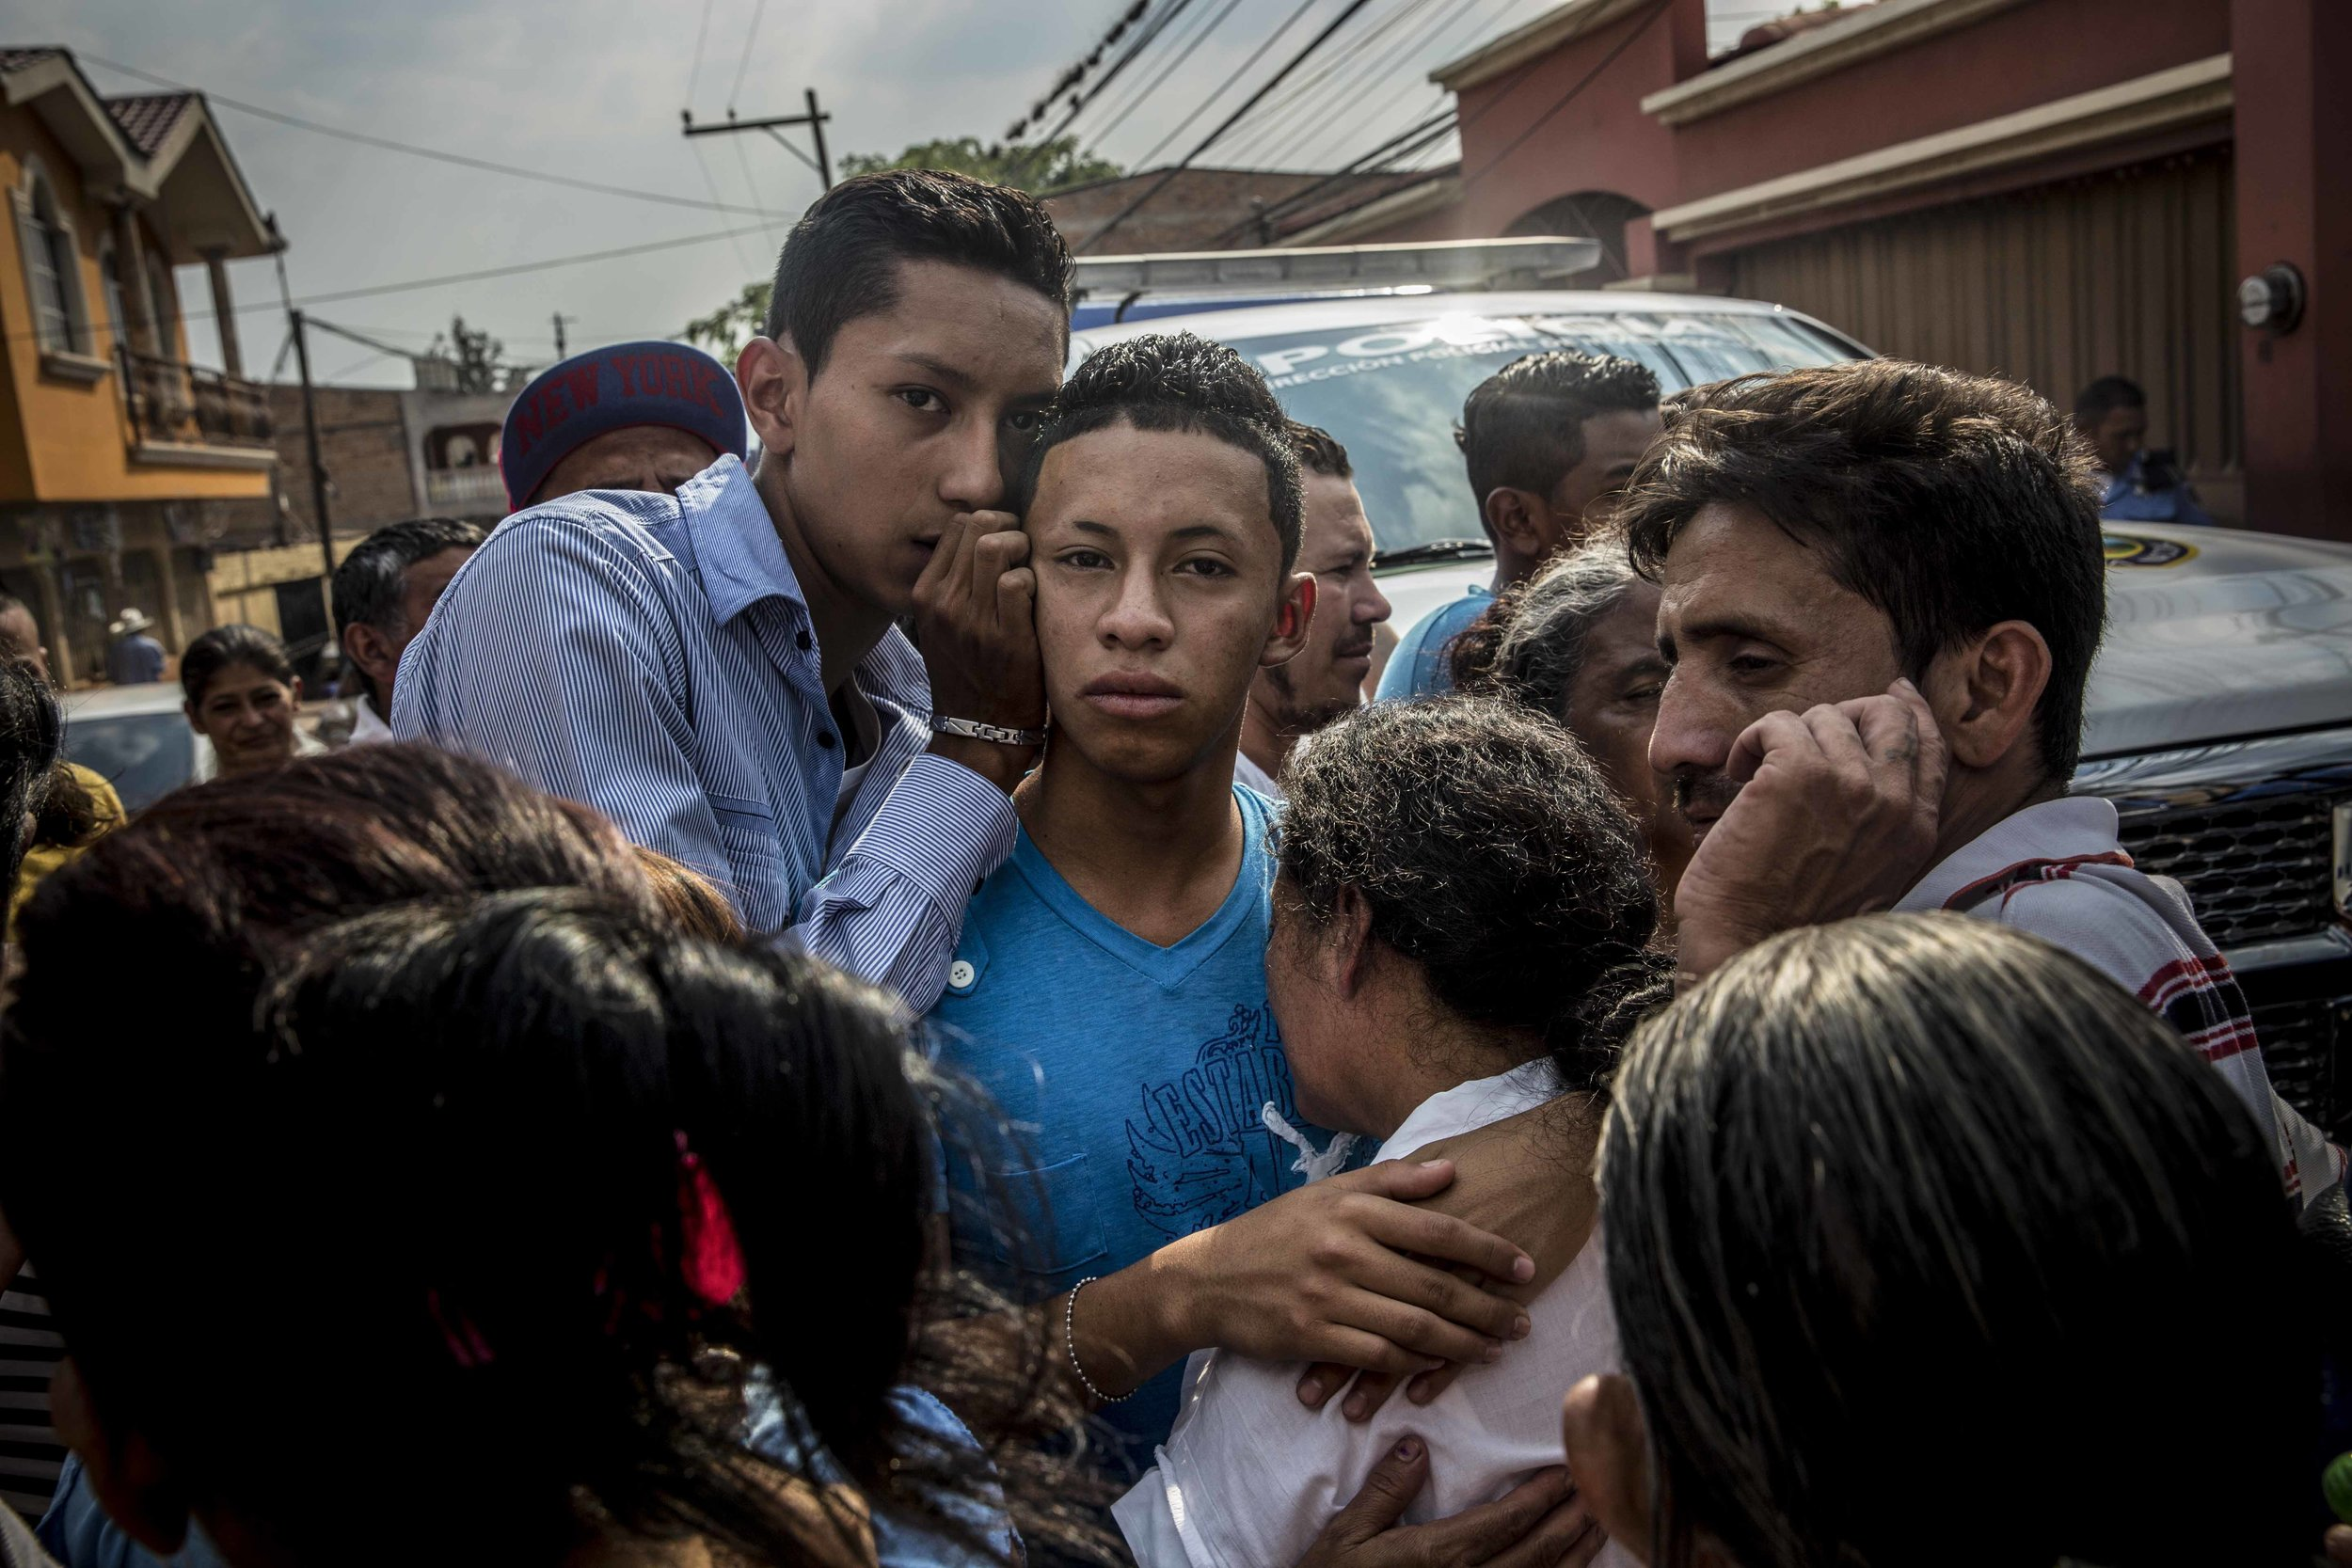 The relatives, brother and mother of two boys, Carlos Amador 22, and Edwin Amador, 20, murdered in cold blood in broad daylight on the streets of Suyapa neighborhood, Teguciaglpa, capital of Honduras.